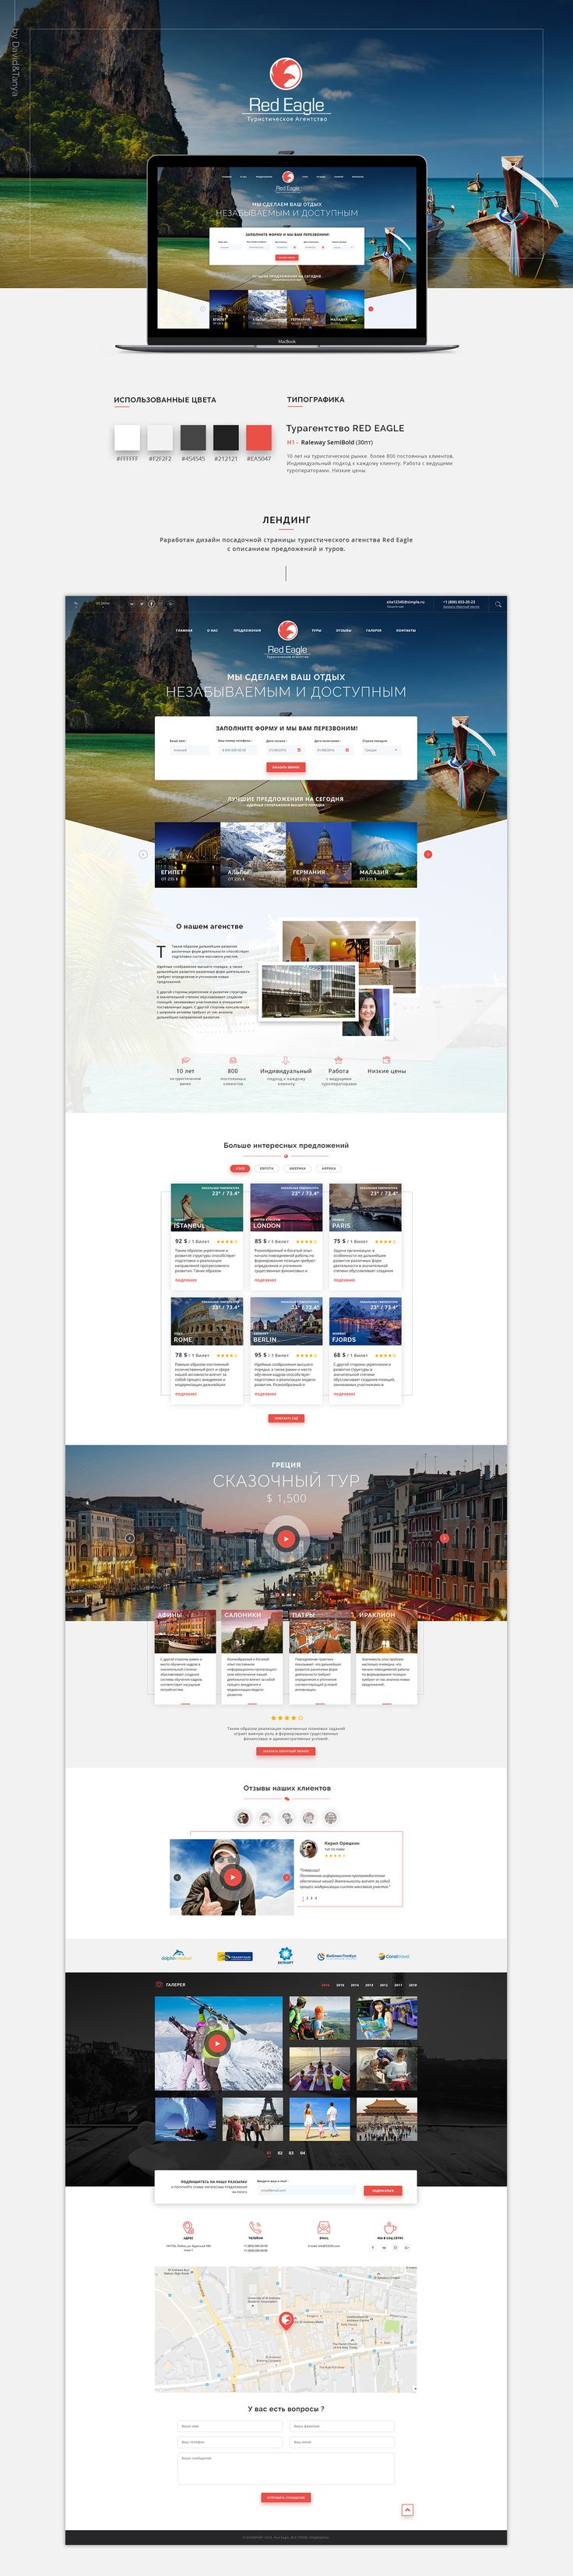 The design of the landing page Red Eagle travel agency with description of offers and tours.